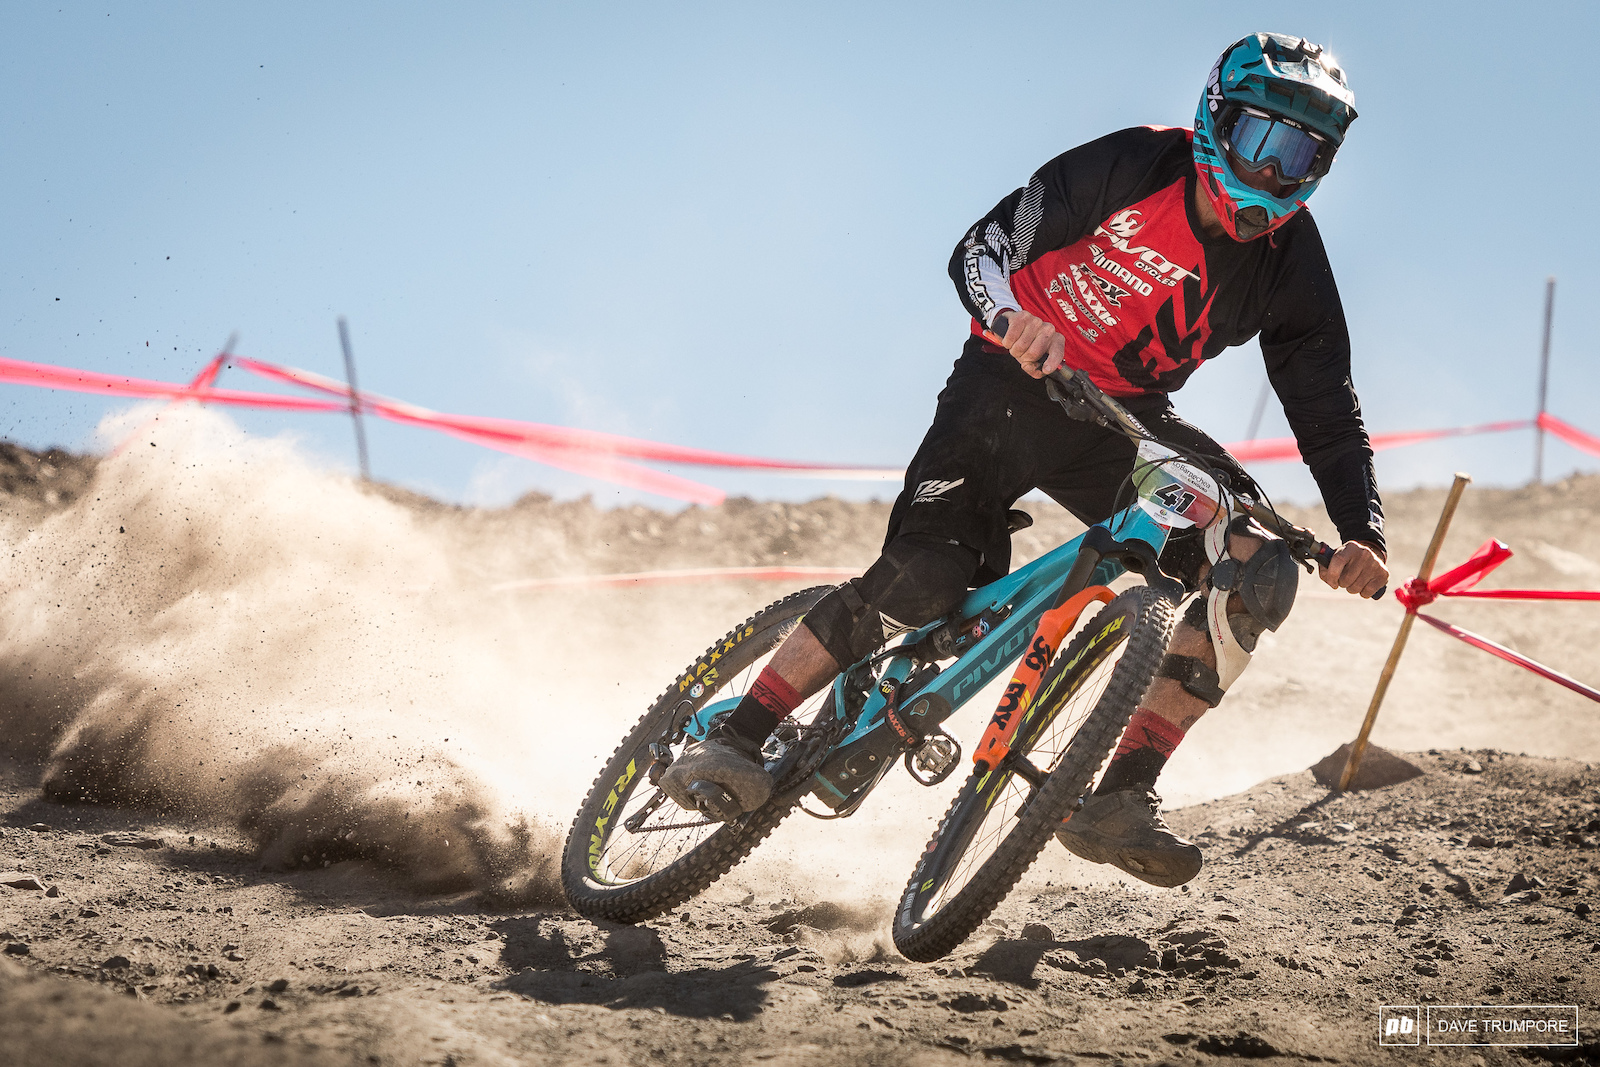 Eddie Masters came out swinging with a 3rd on stage 1.